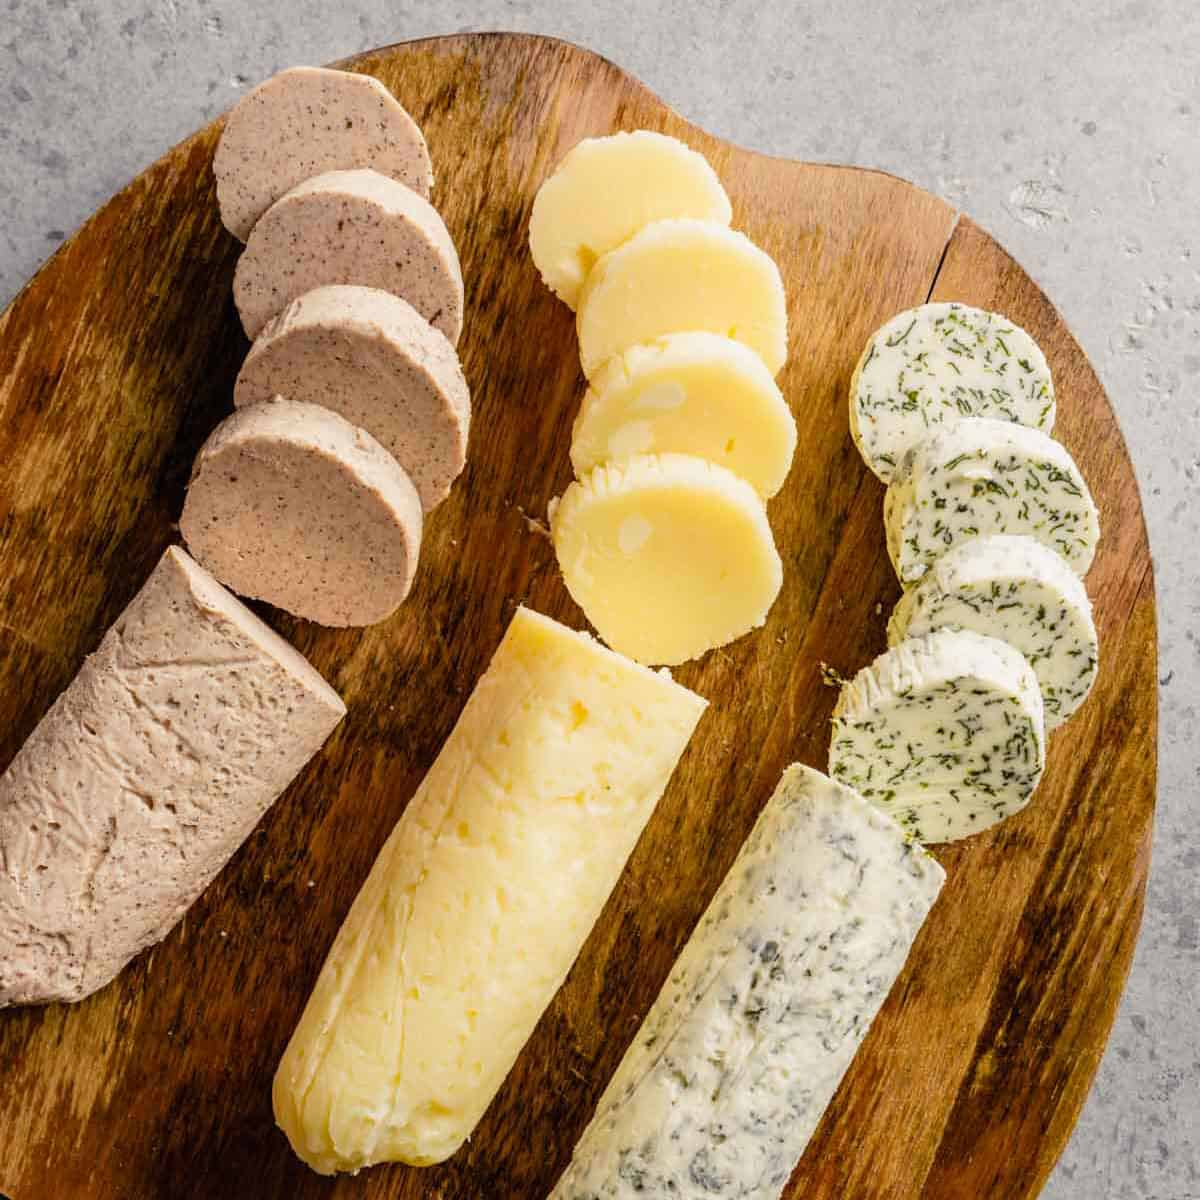 Three different compound butters cut in slices on a wooden cutting board.